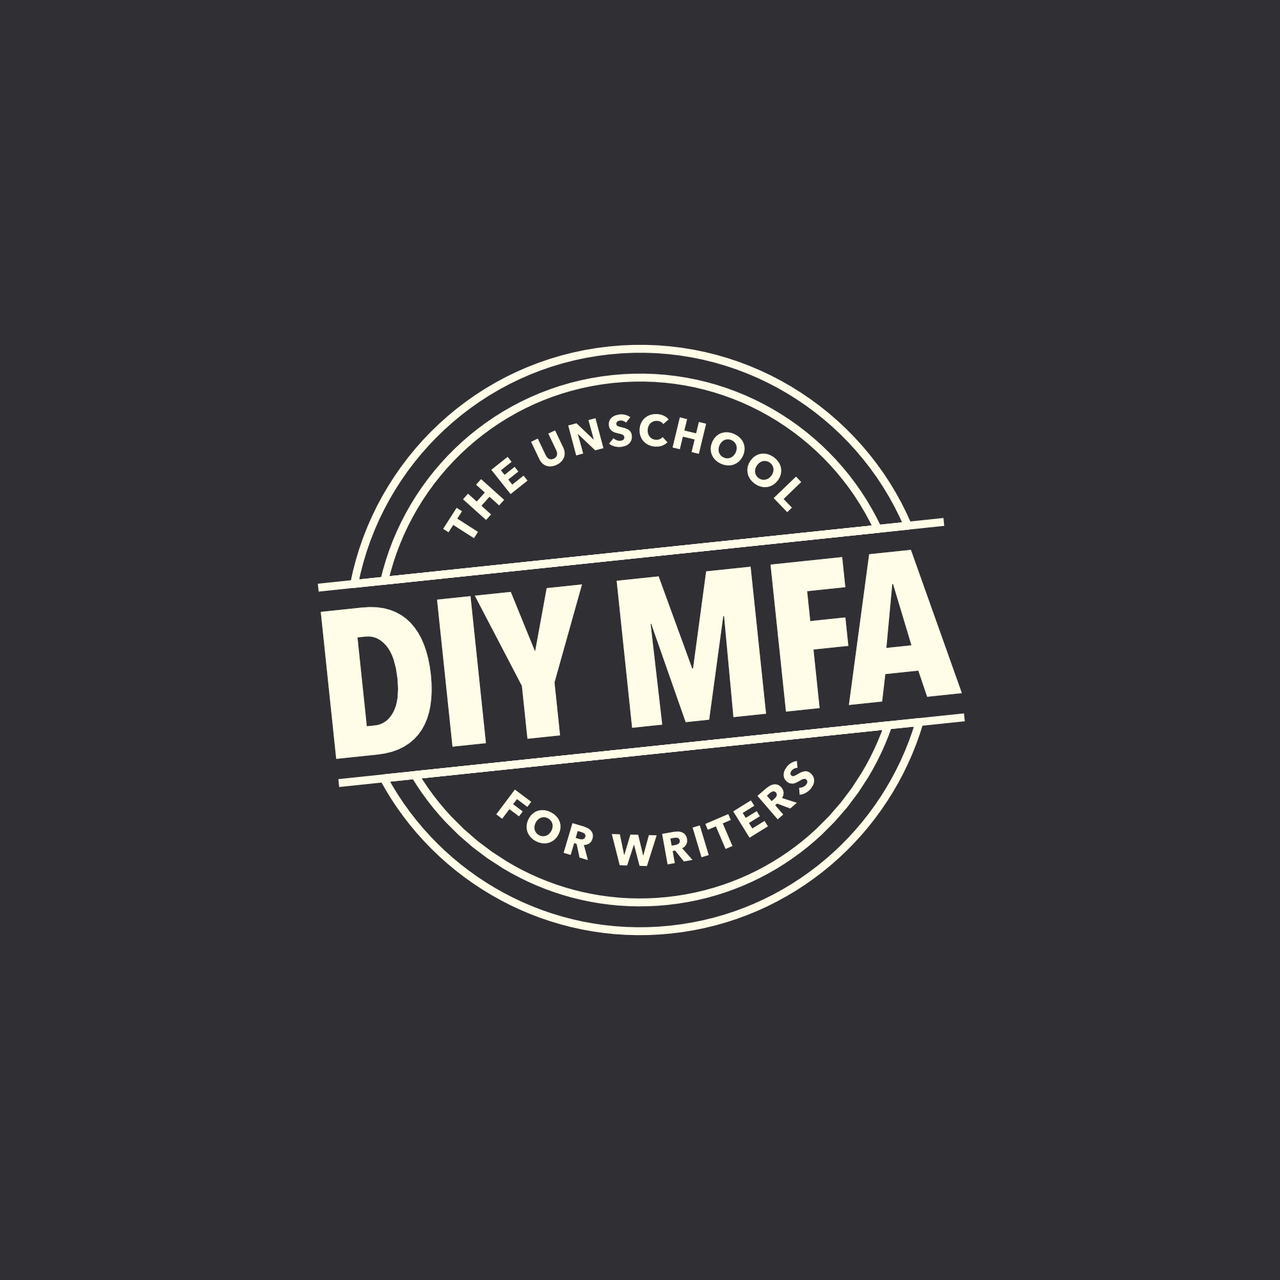 The Unschool for Writers: a DIY MFA